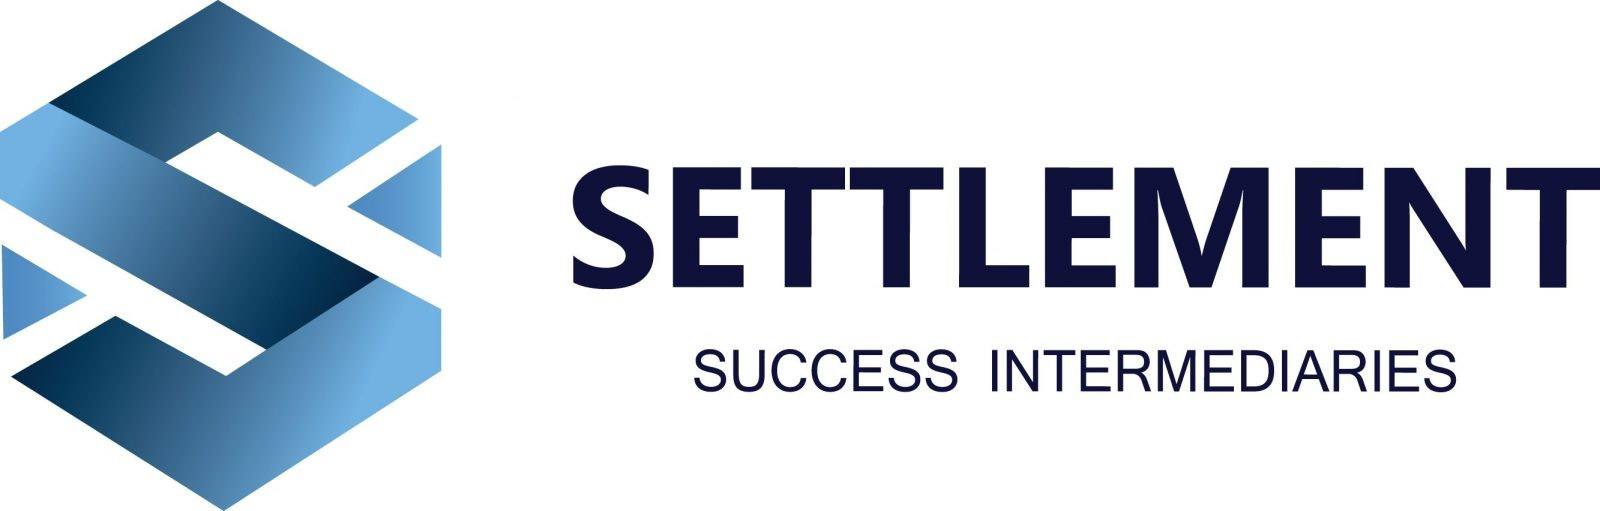 Settlement Success Intermediaries